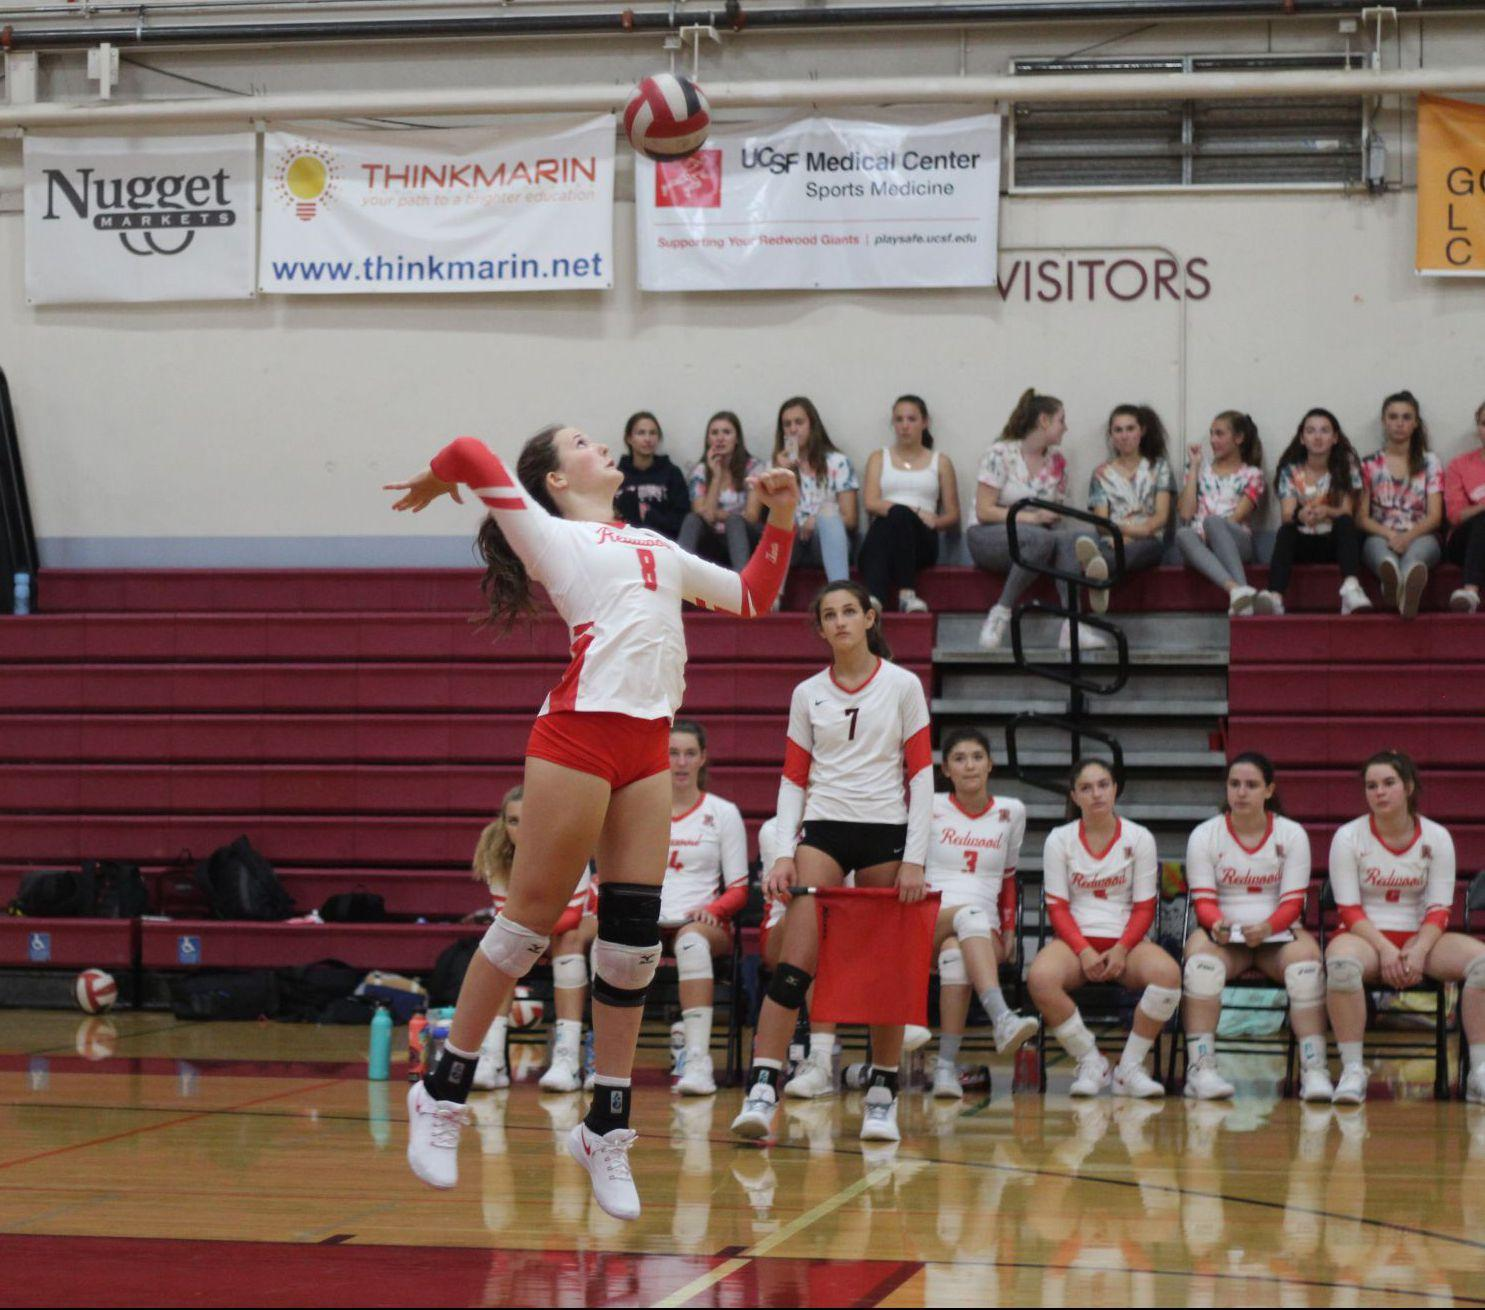 Girls' varsity volleyball serves Tam to keep winning streak